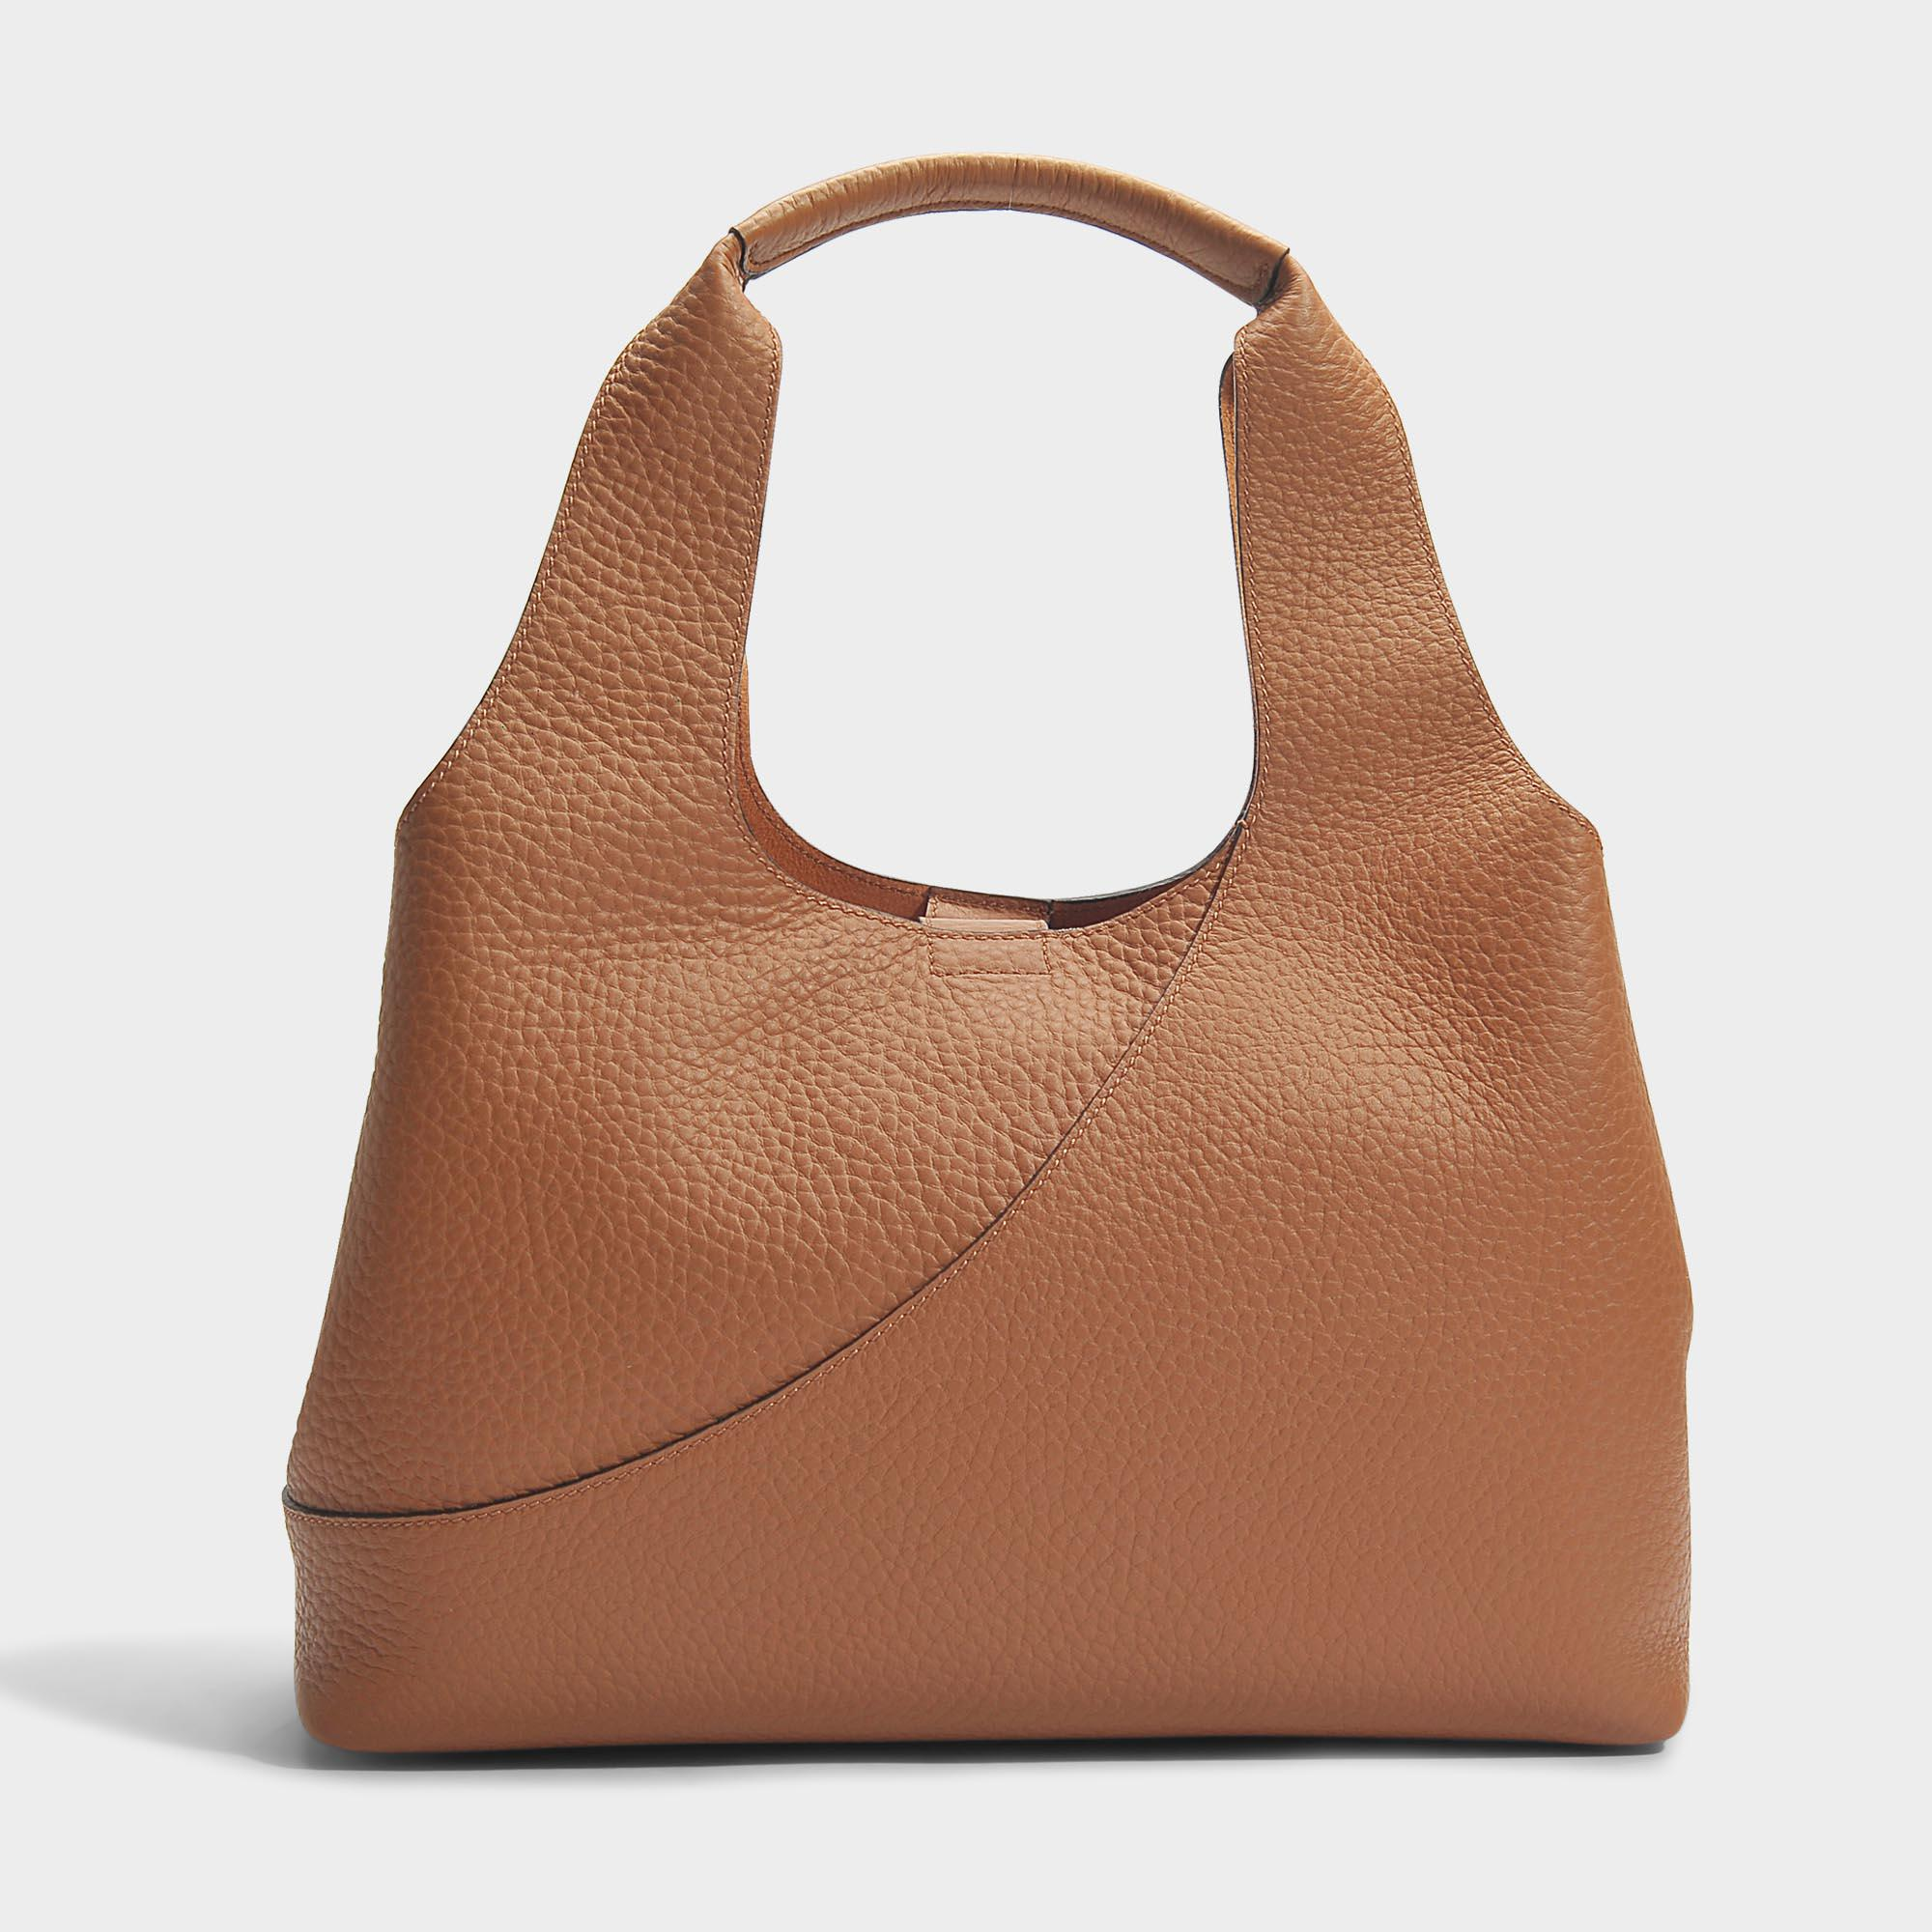 Horizontal Tote Bag in Multicolour Grained Leather Hogan EyHNuhE